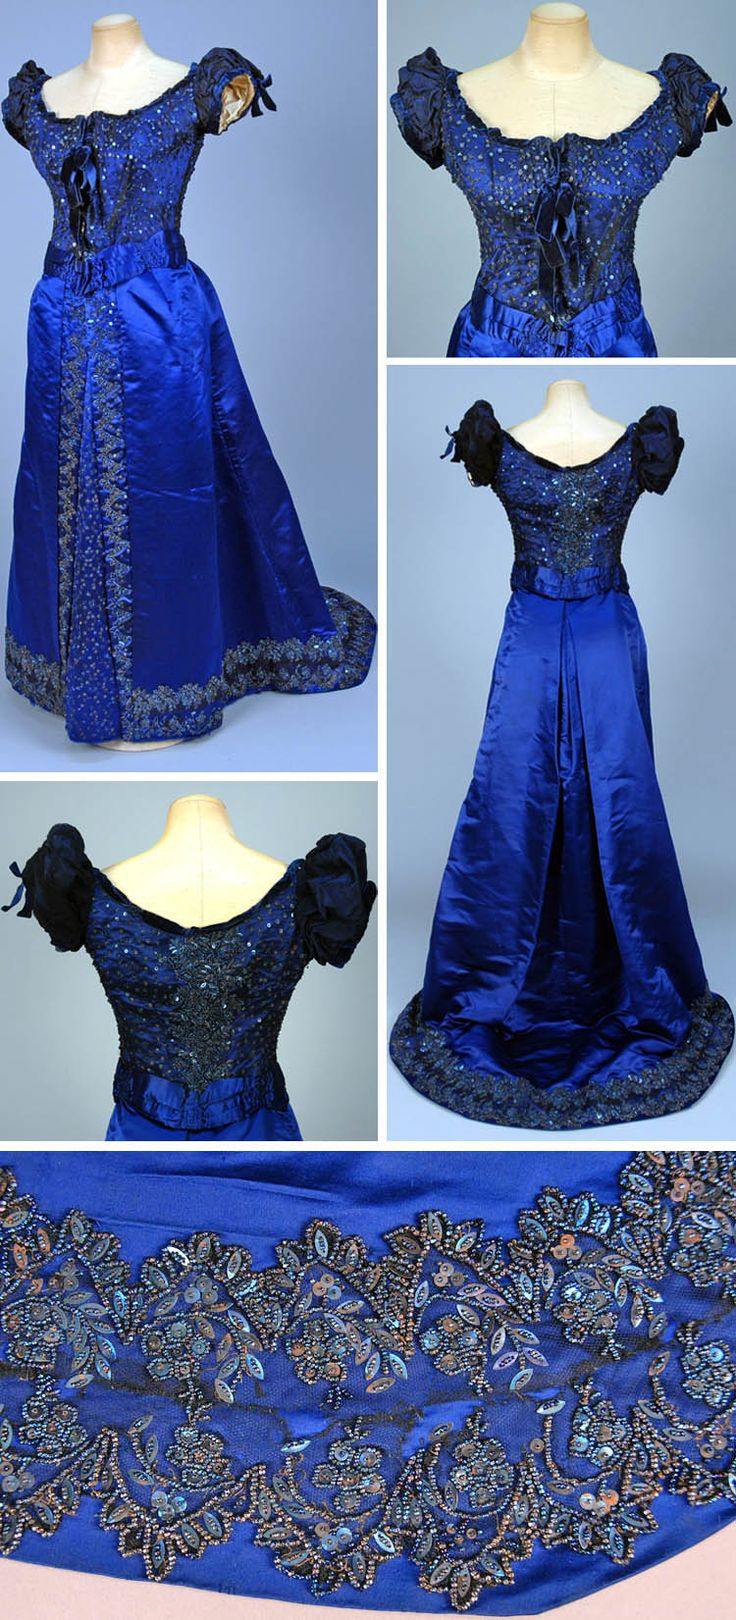 Evening dress, Worth, circa 1880s. Two-piece sapphire blue silk satin. Boned bodice covered in black tulle studded with beads and sequins. Short puffed sleeves, ruched and pleated waistband. Skirt has studded front insert flanked by beaded border with Van Dyke points. Matching decoration at tulle hem band. Taffeta underskirt with pleated net and lace hem ruffle. Via Whitaker Auctions.